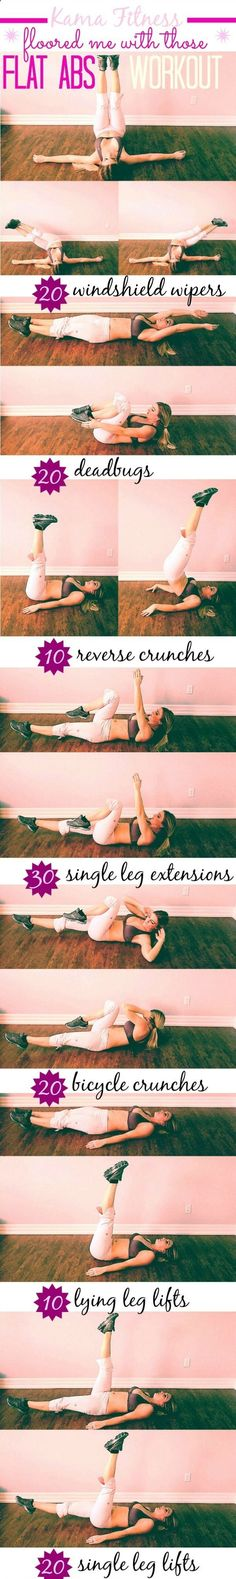 Great ab workout